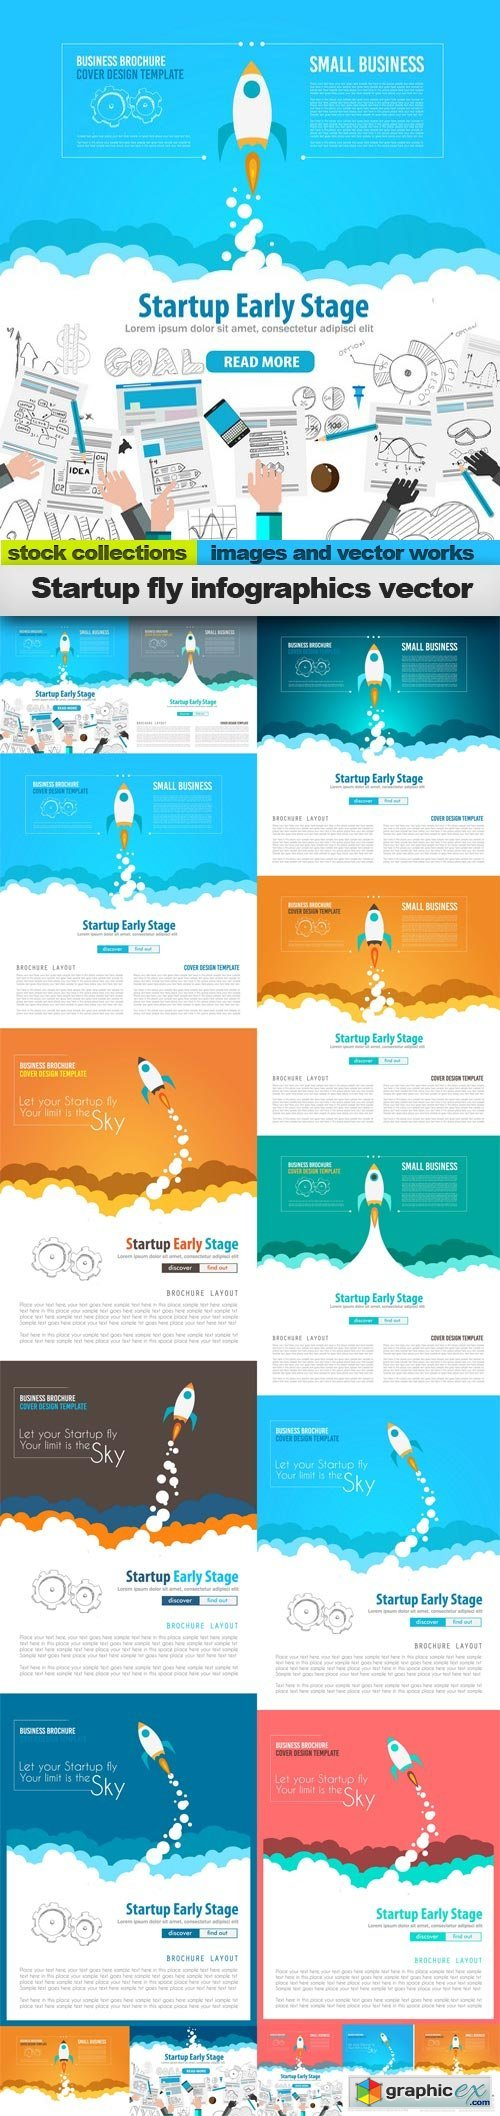 Startup fly infographics vector, 15 x EPS